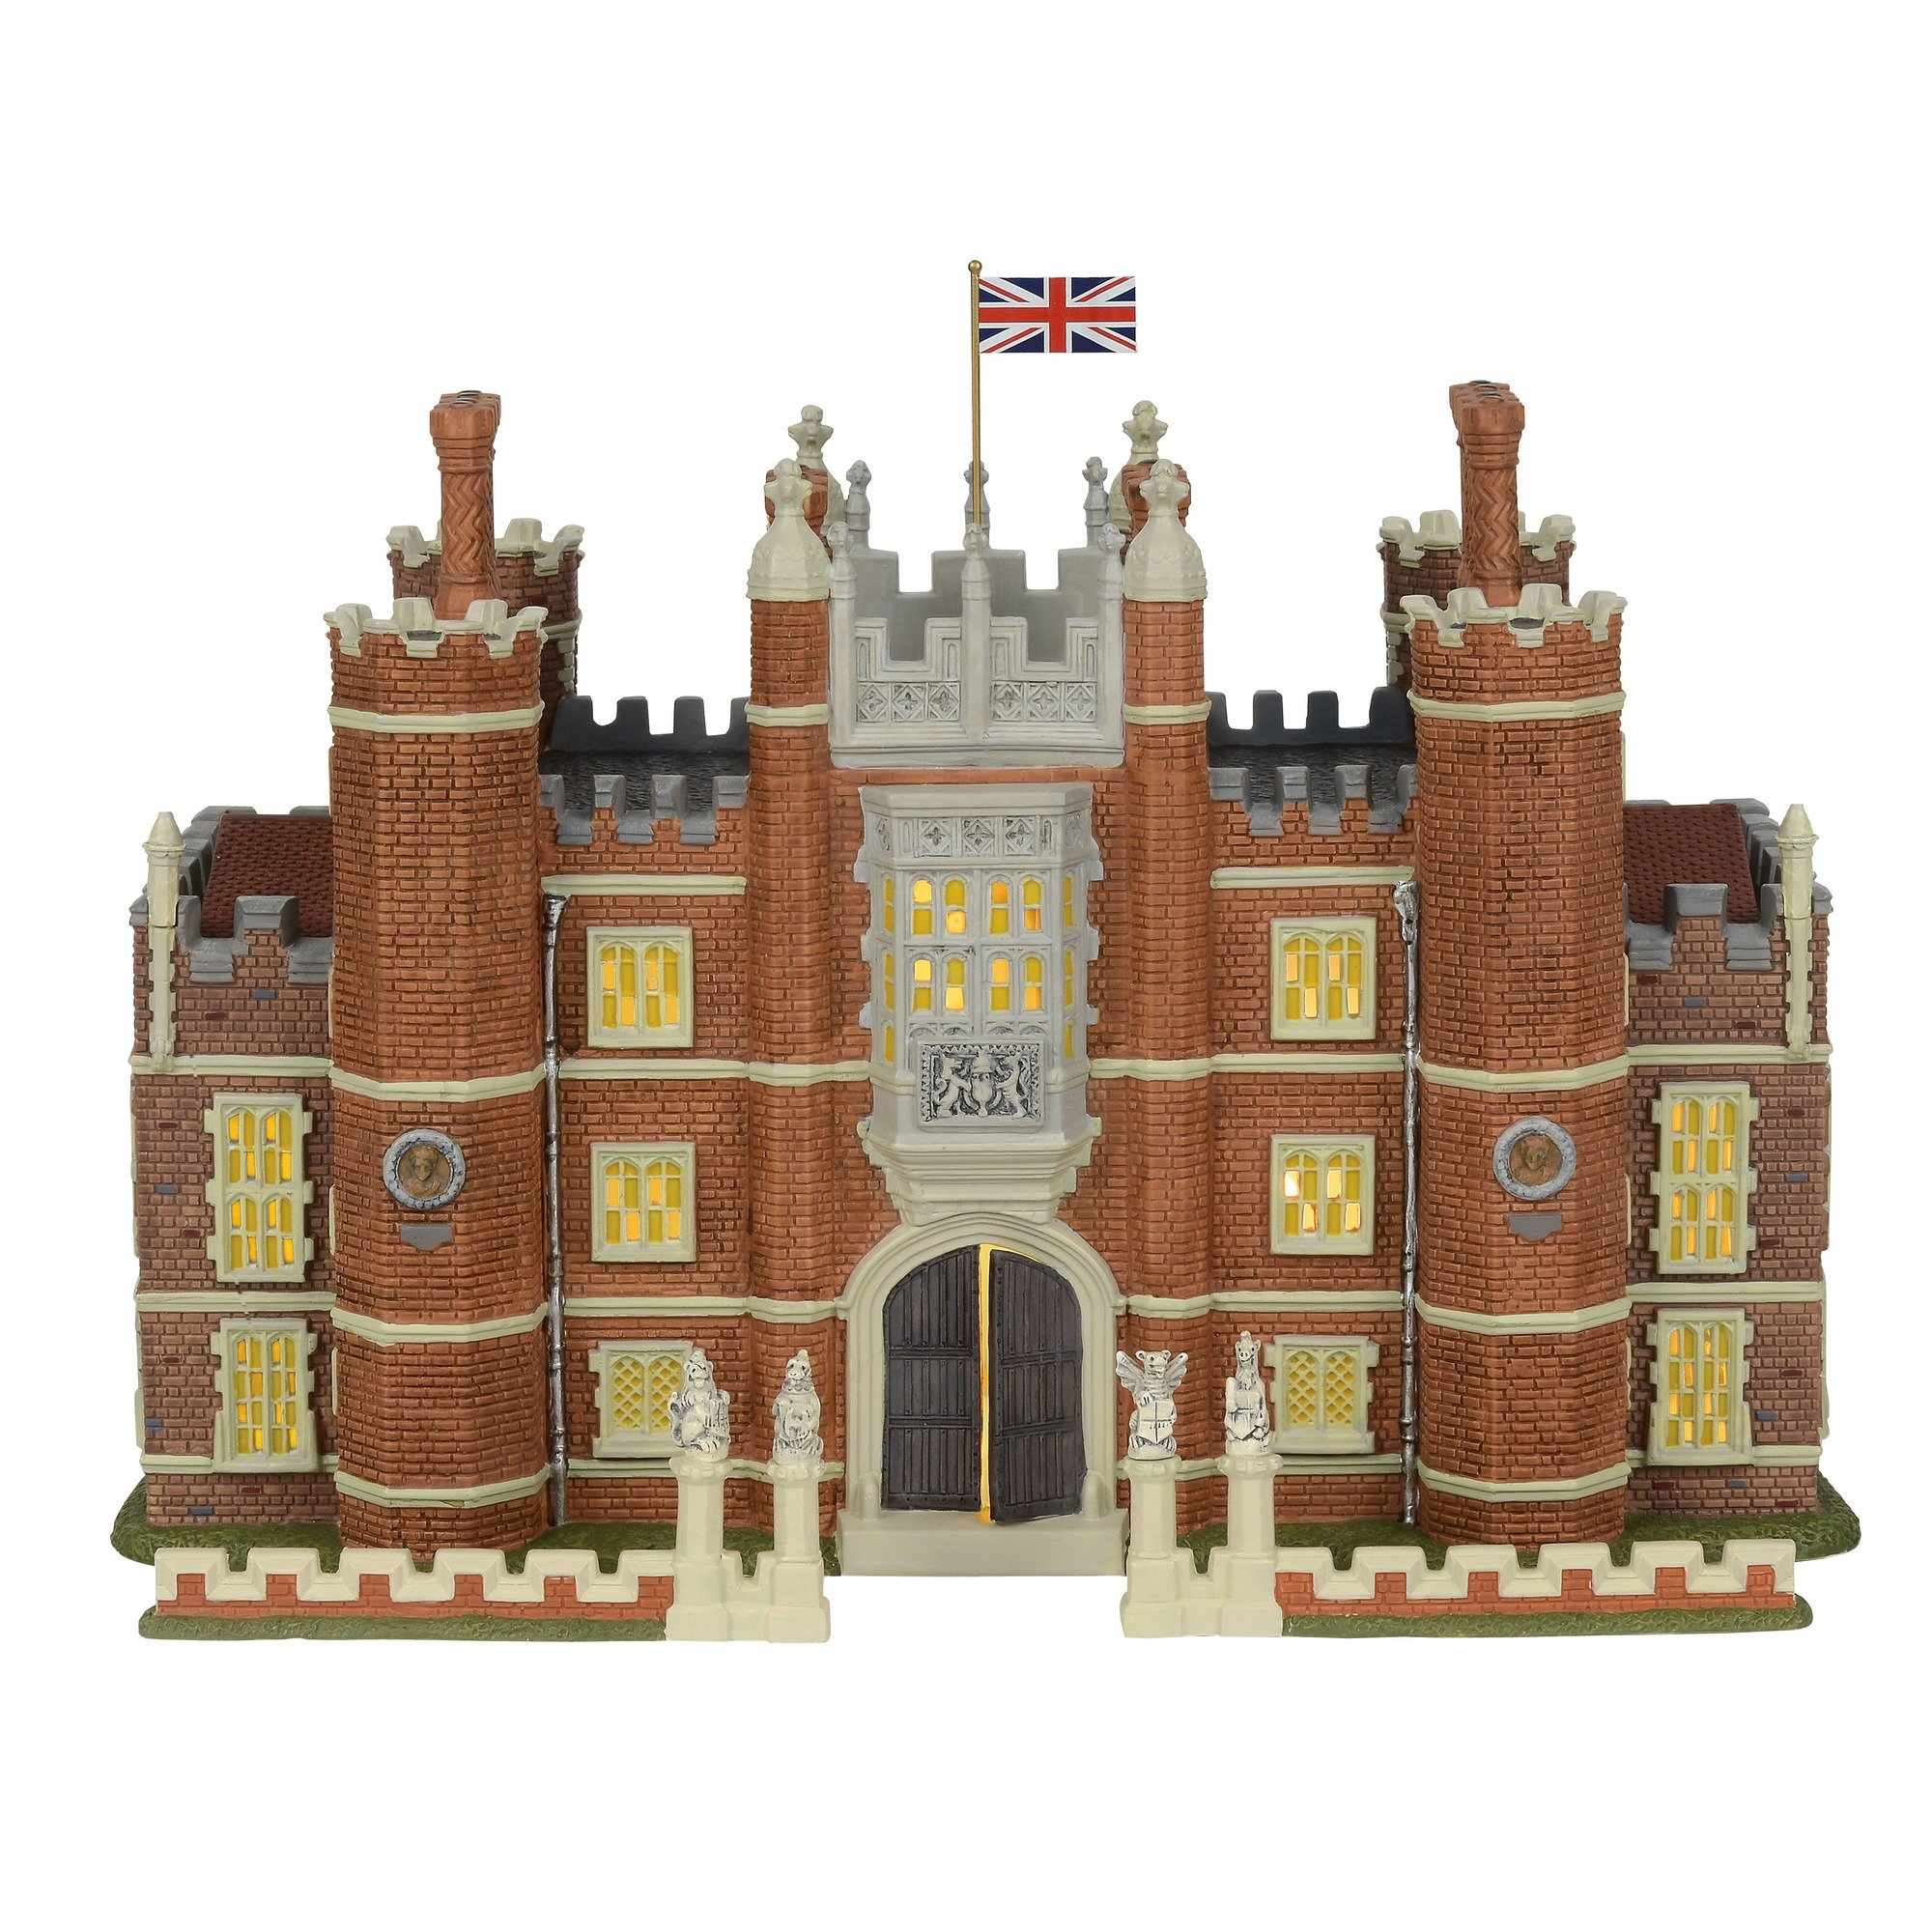 Department 56 Dickens Village Hampton Court Palace Lit Building and Accessories, 8.75'', Multicolor by Department 56